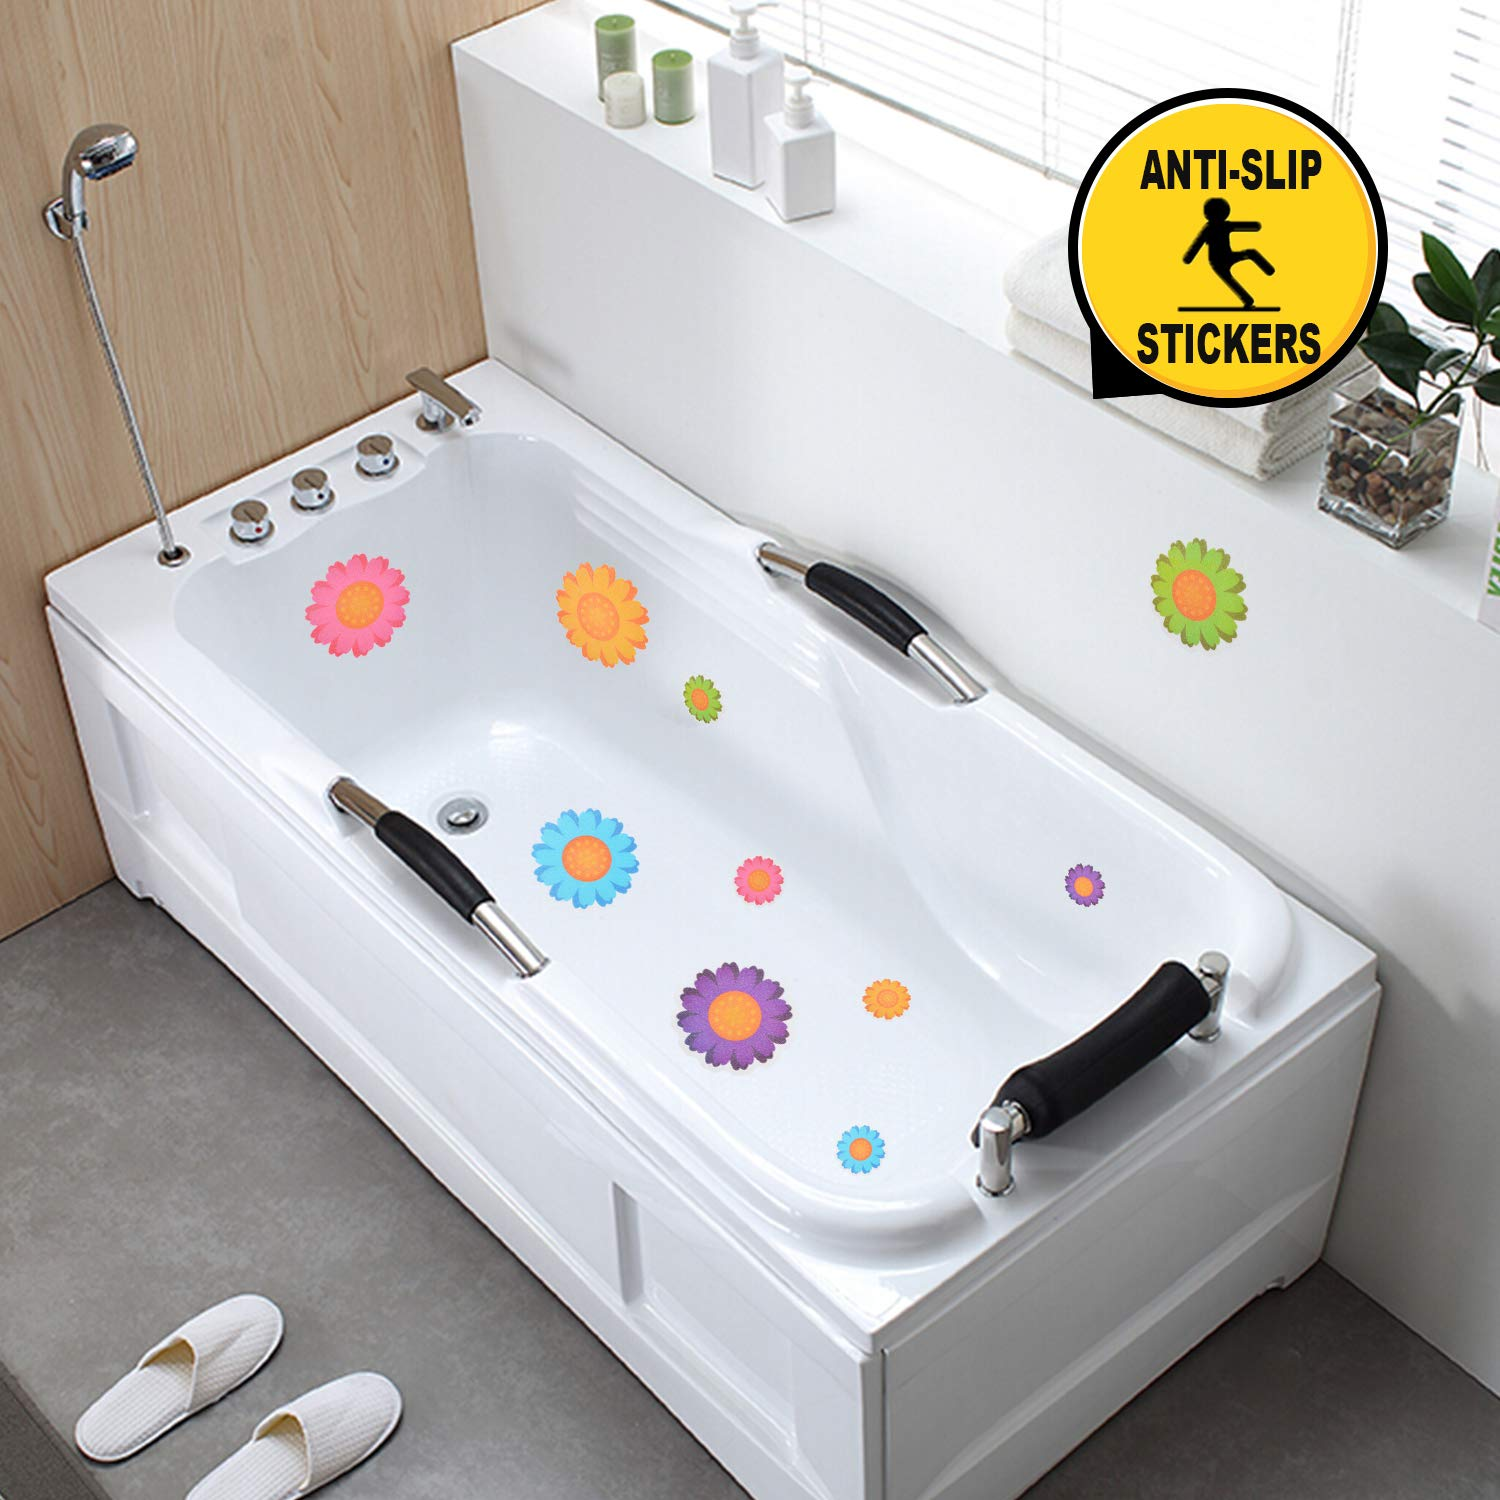 Nidoul Nonslip Bathtub Stickers Adhesive Bathroom Shower Safety Appliques Decals 10Pcs Flowers Anti-Slip Shower Stickers for Kids Adults